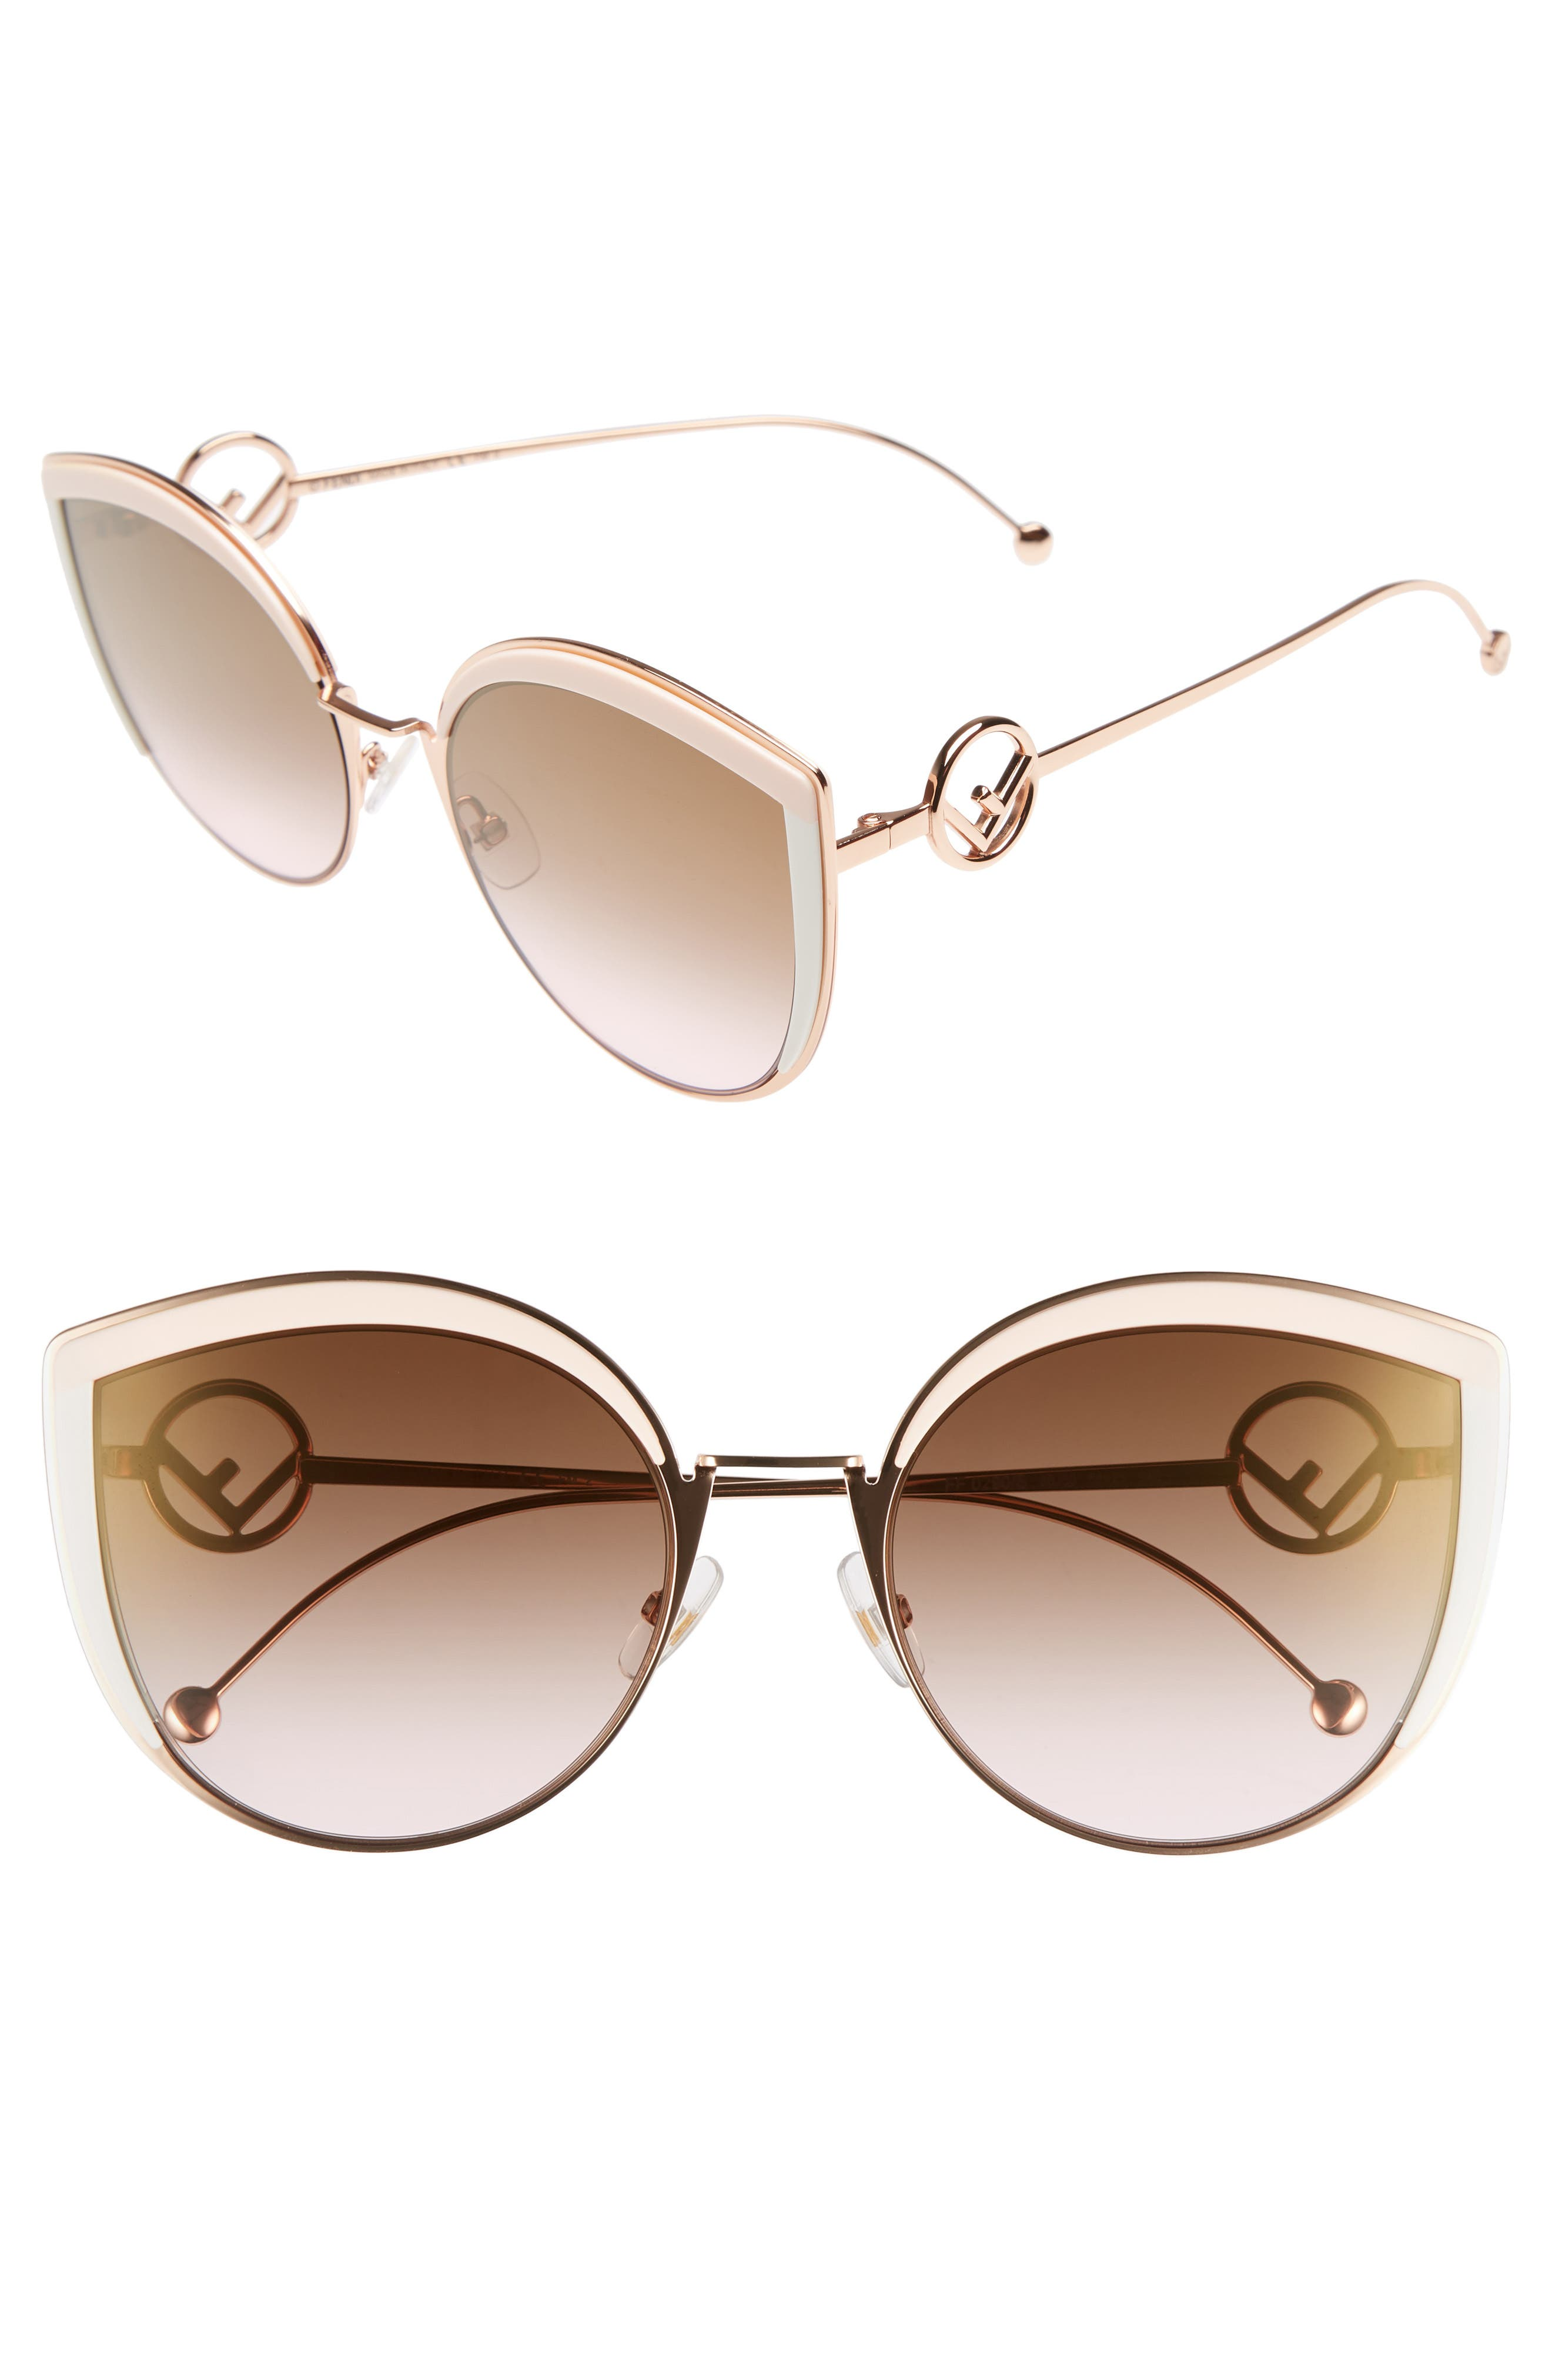 58mm Metal Butterfly Sunglasses,                         Main,                         color, Pink